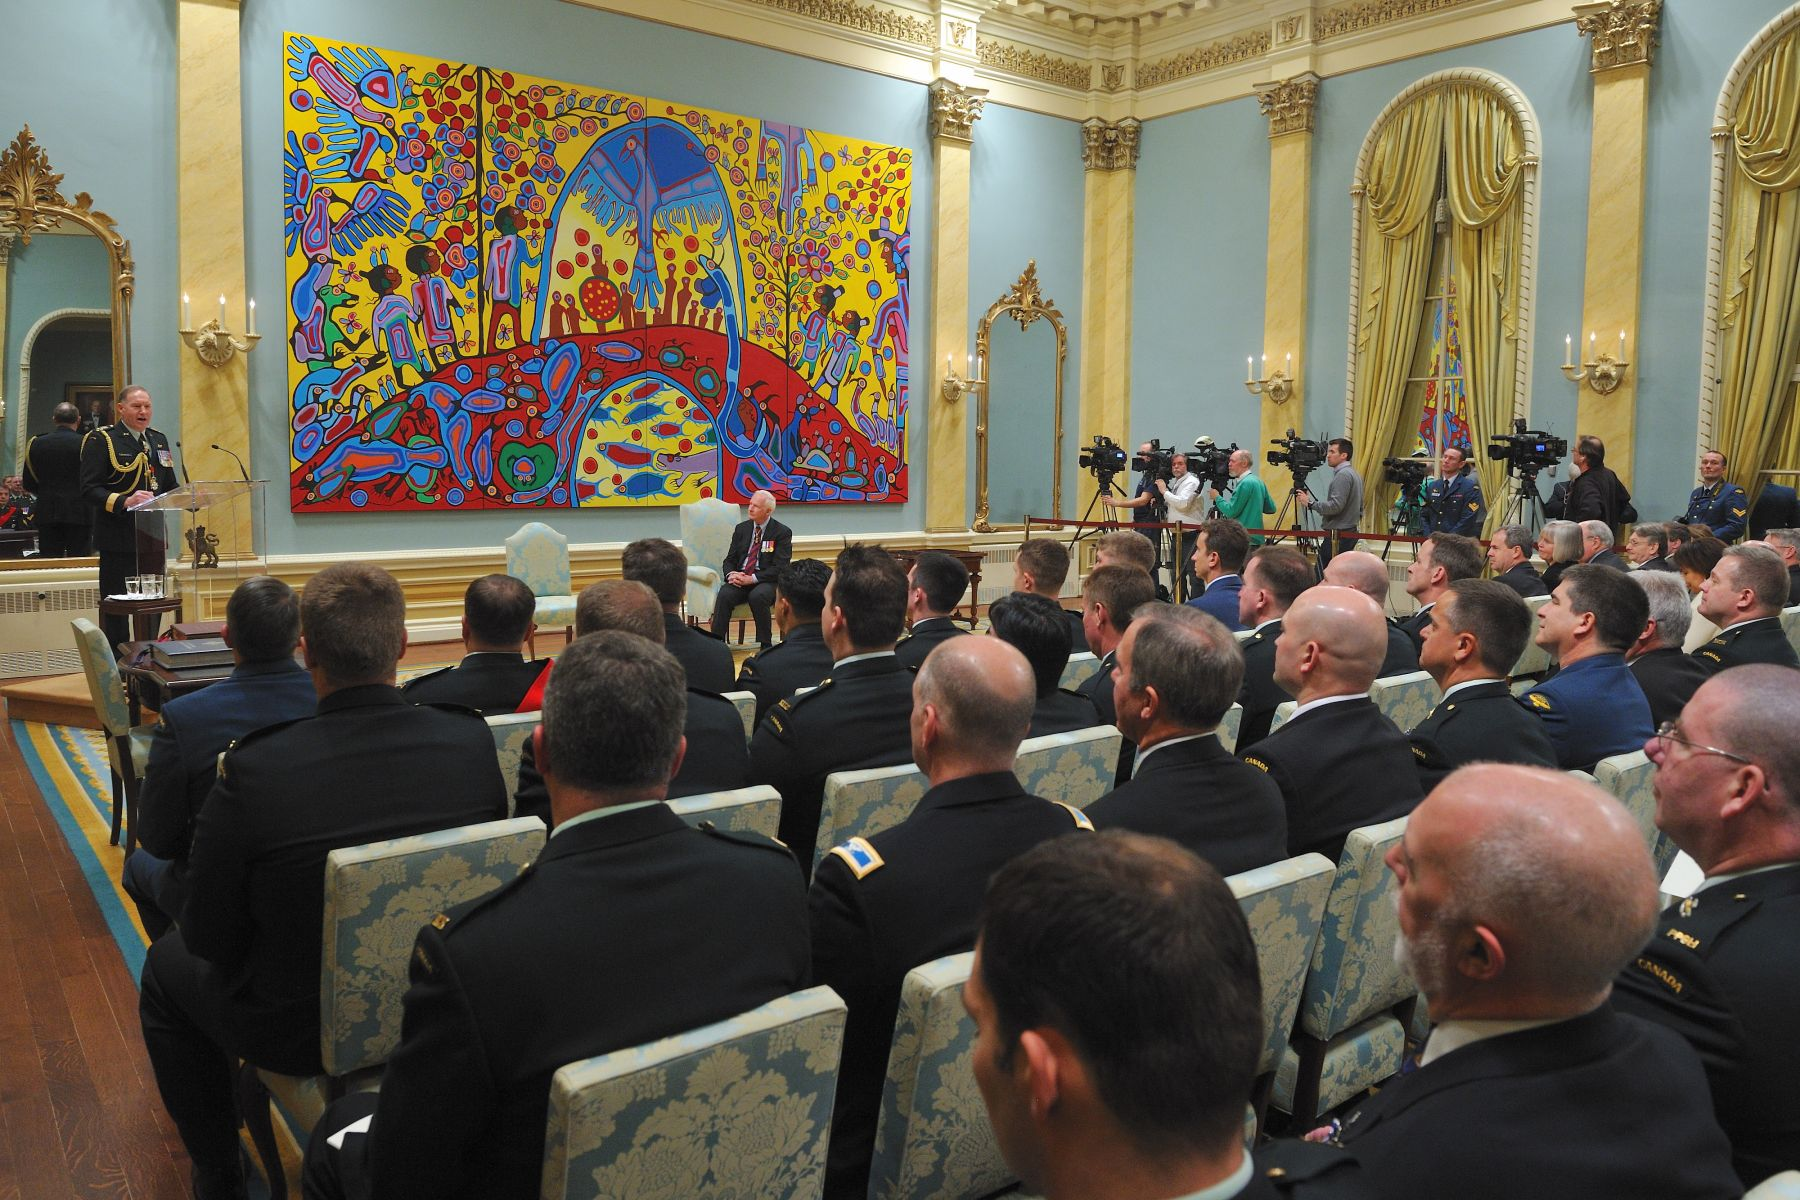 The Governor General presents honours and awards on behalf of all Canadians to recognize those people who have demonstrated excellence, courage or exceptional dedication to service in ways that bring special credit to this country.